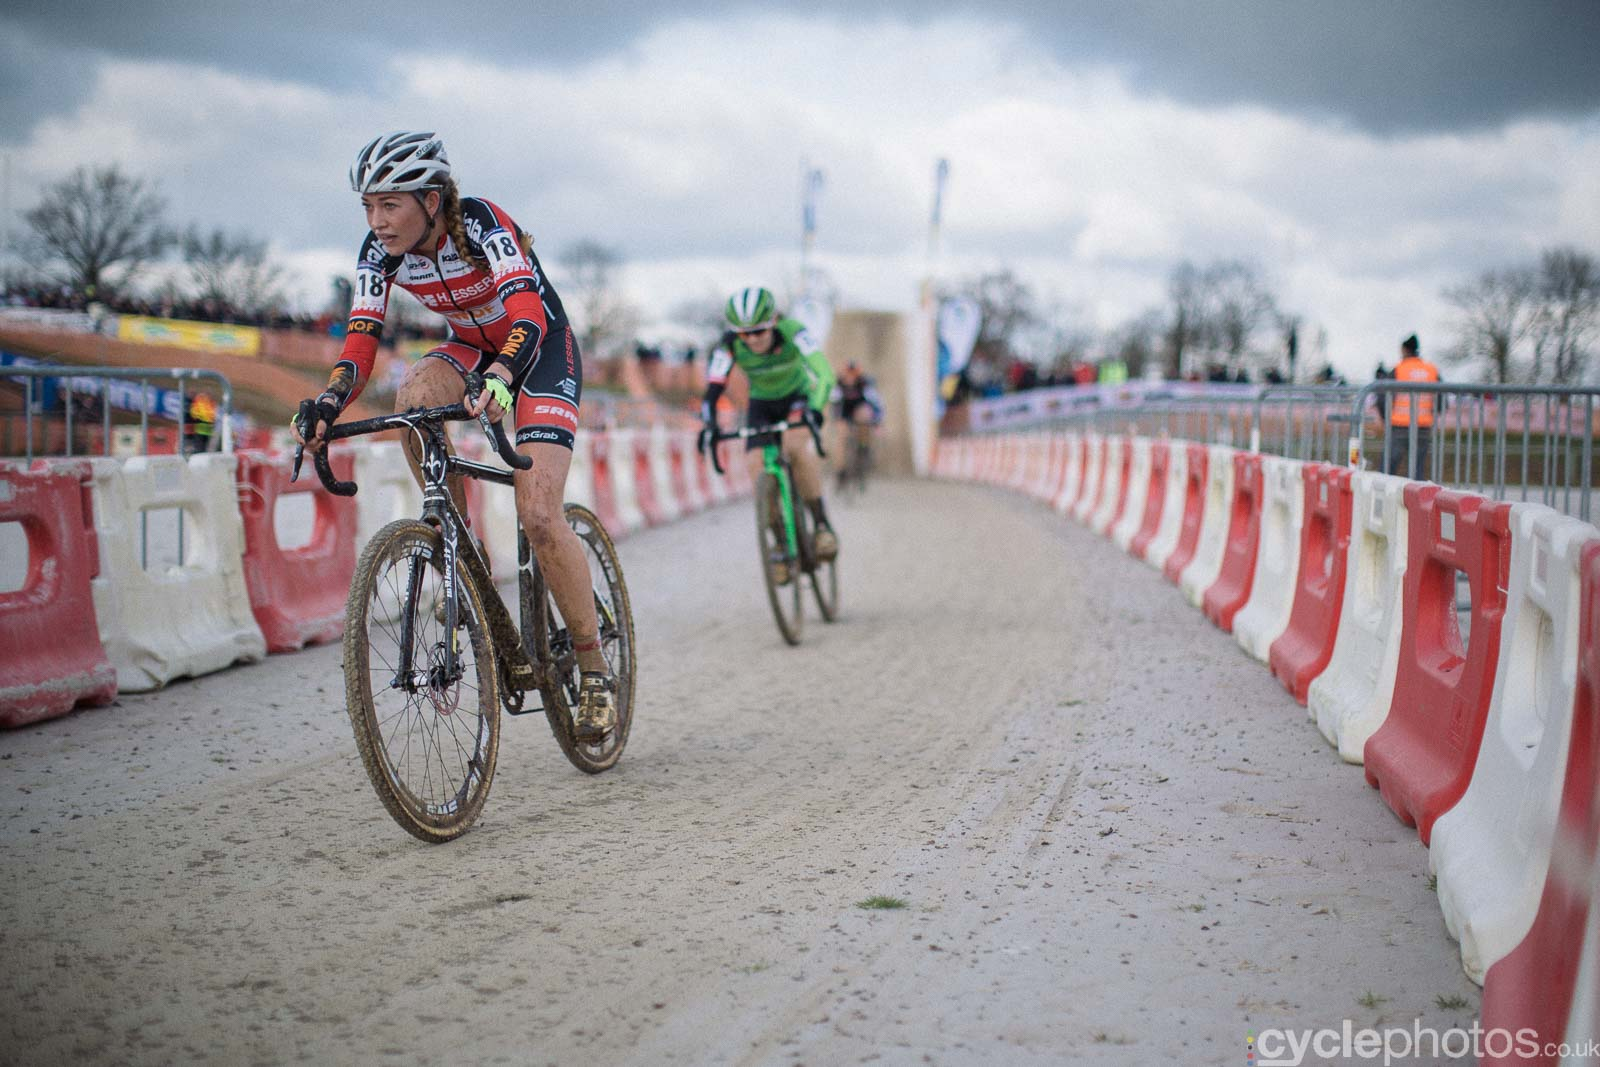 2016-cyclephotos-cyclocross-lignieres-140320-sophie-de-boer